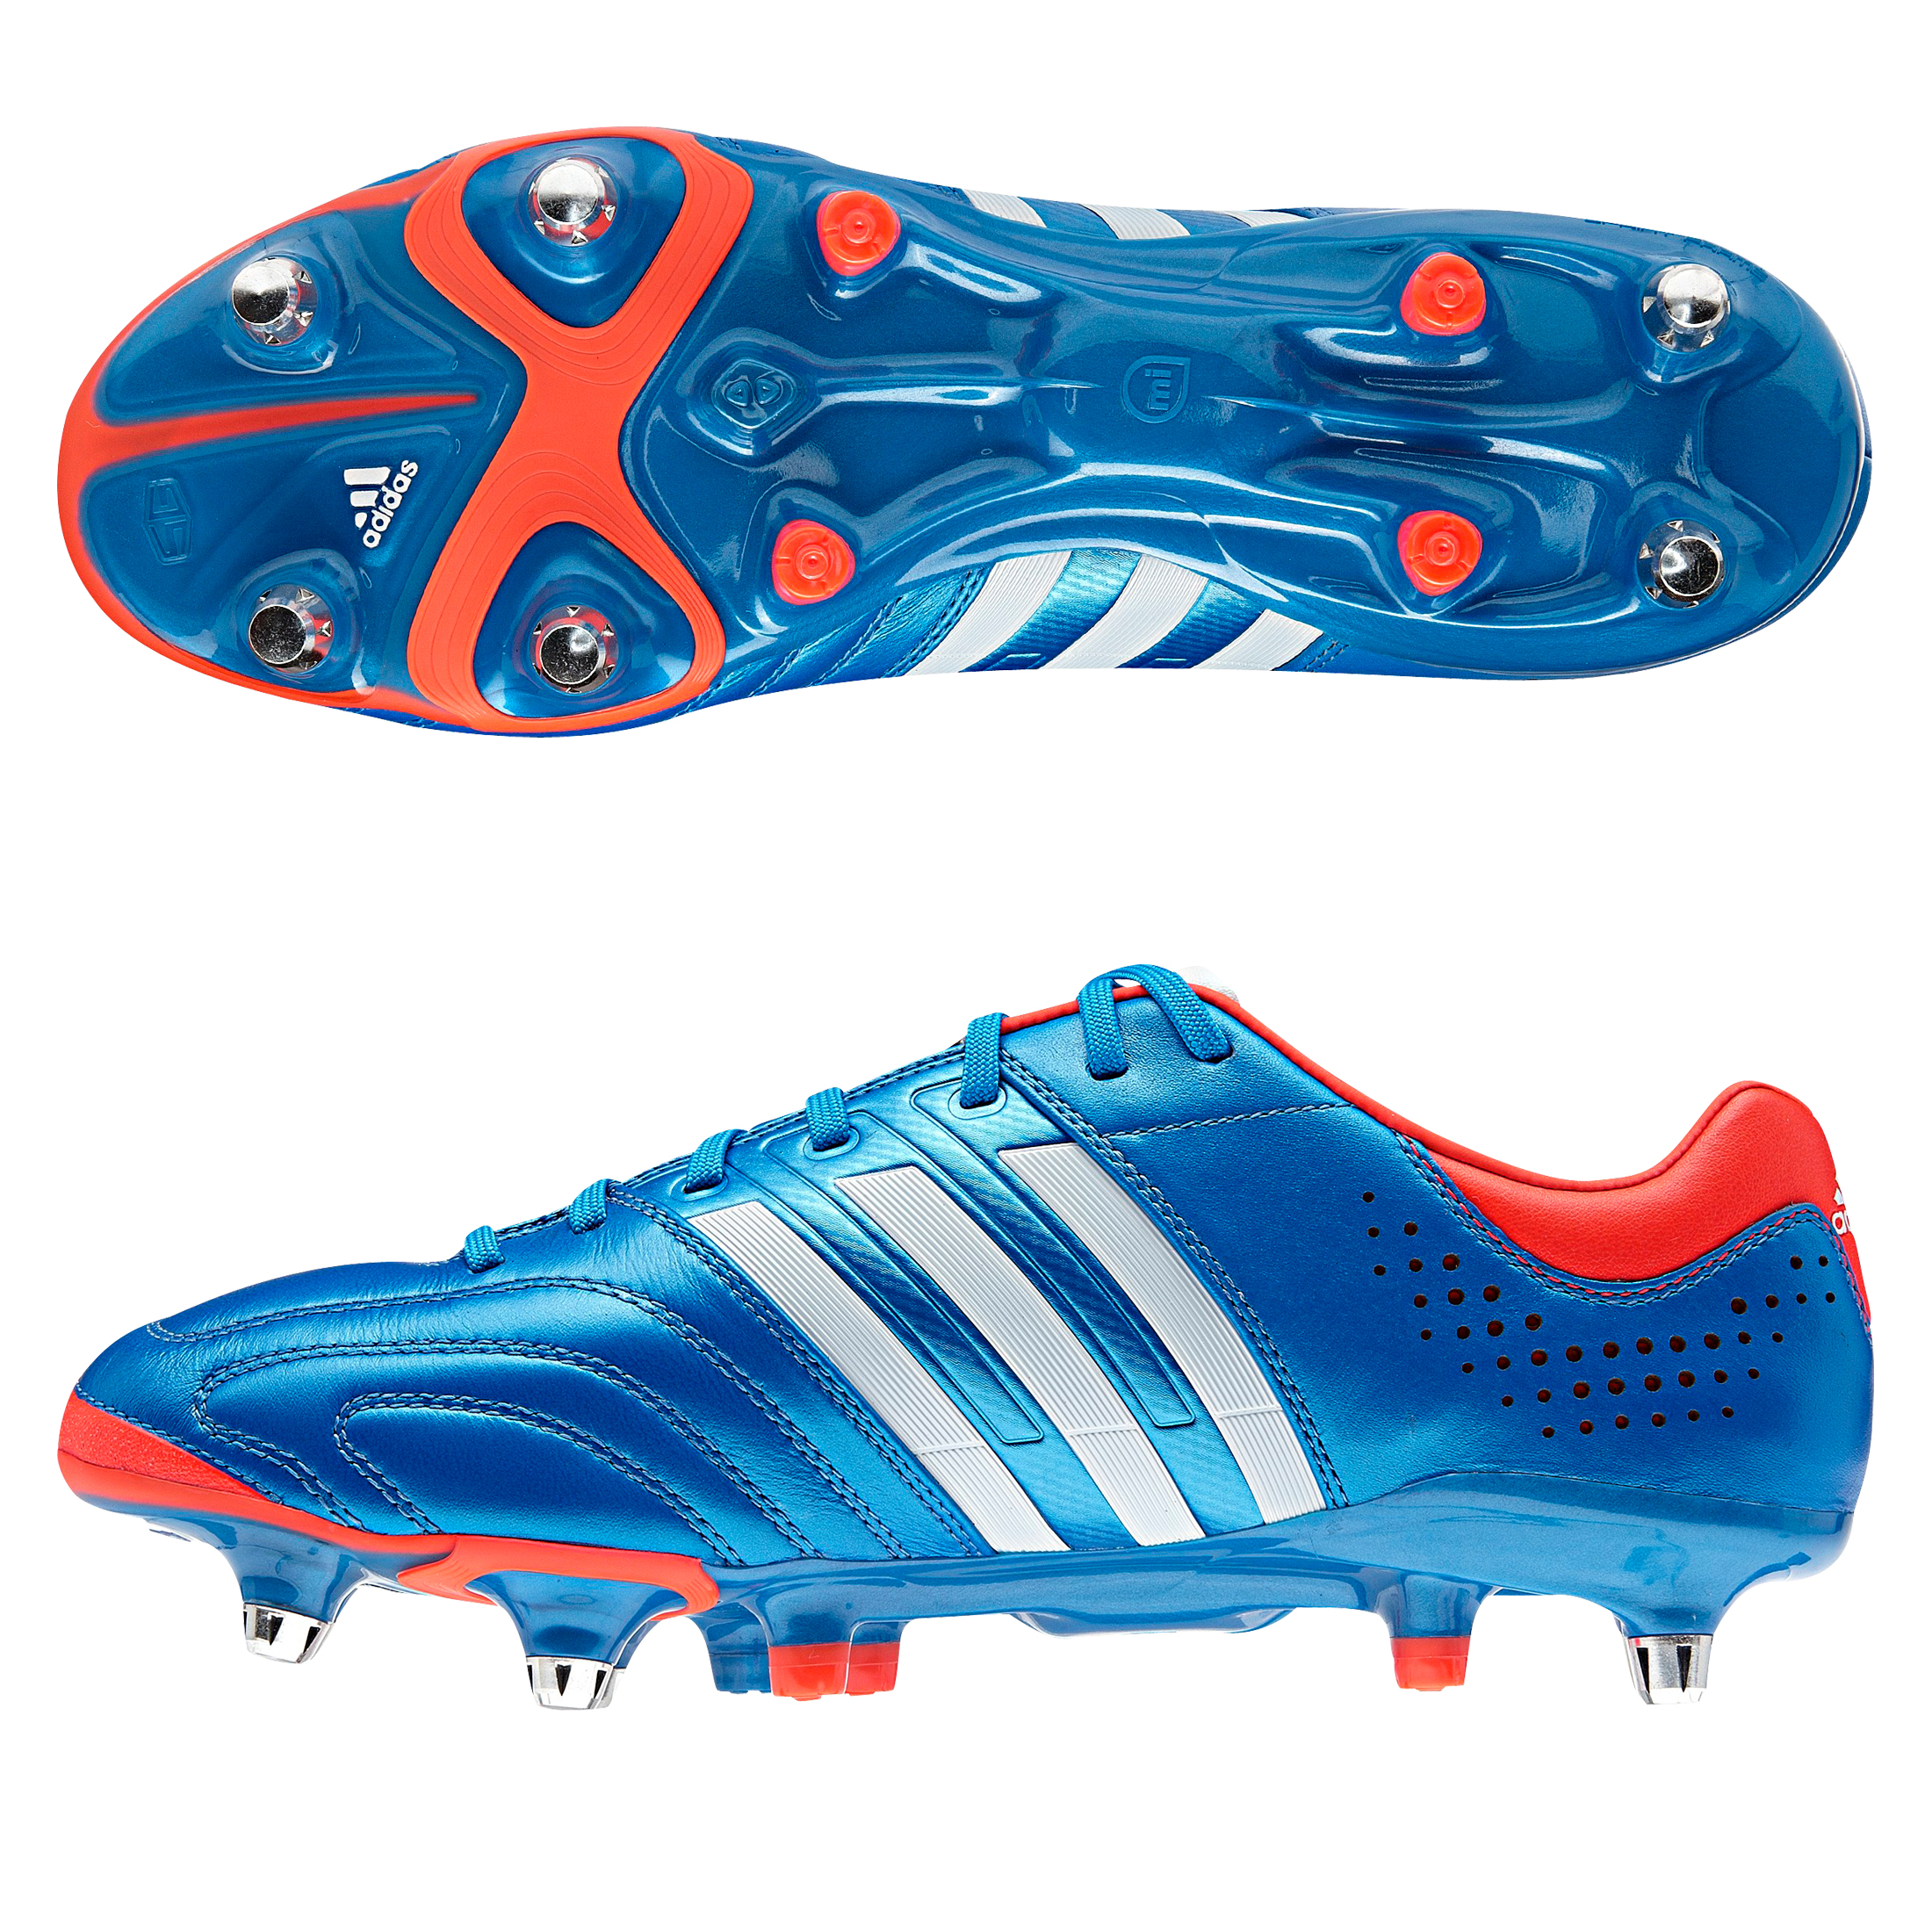 Adipure 11Pro XTRX SG Bright Blue/Running White/Infrared